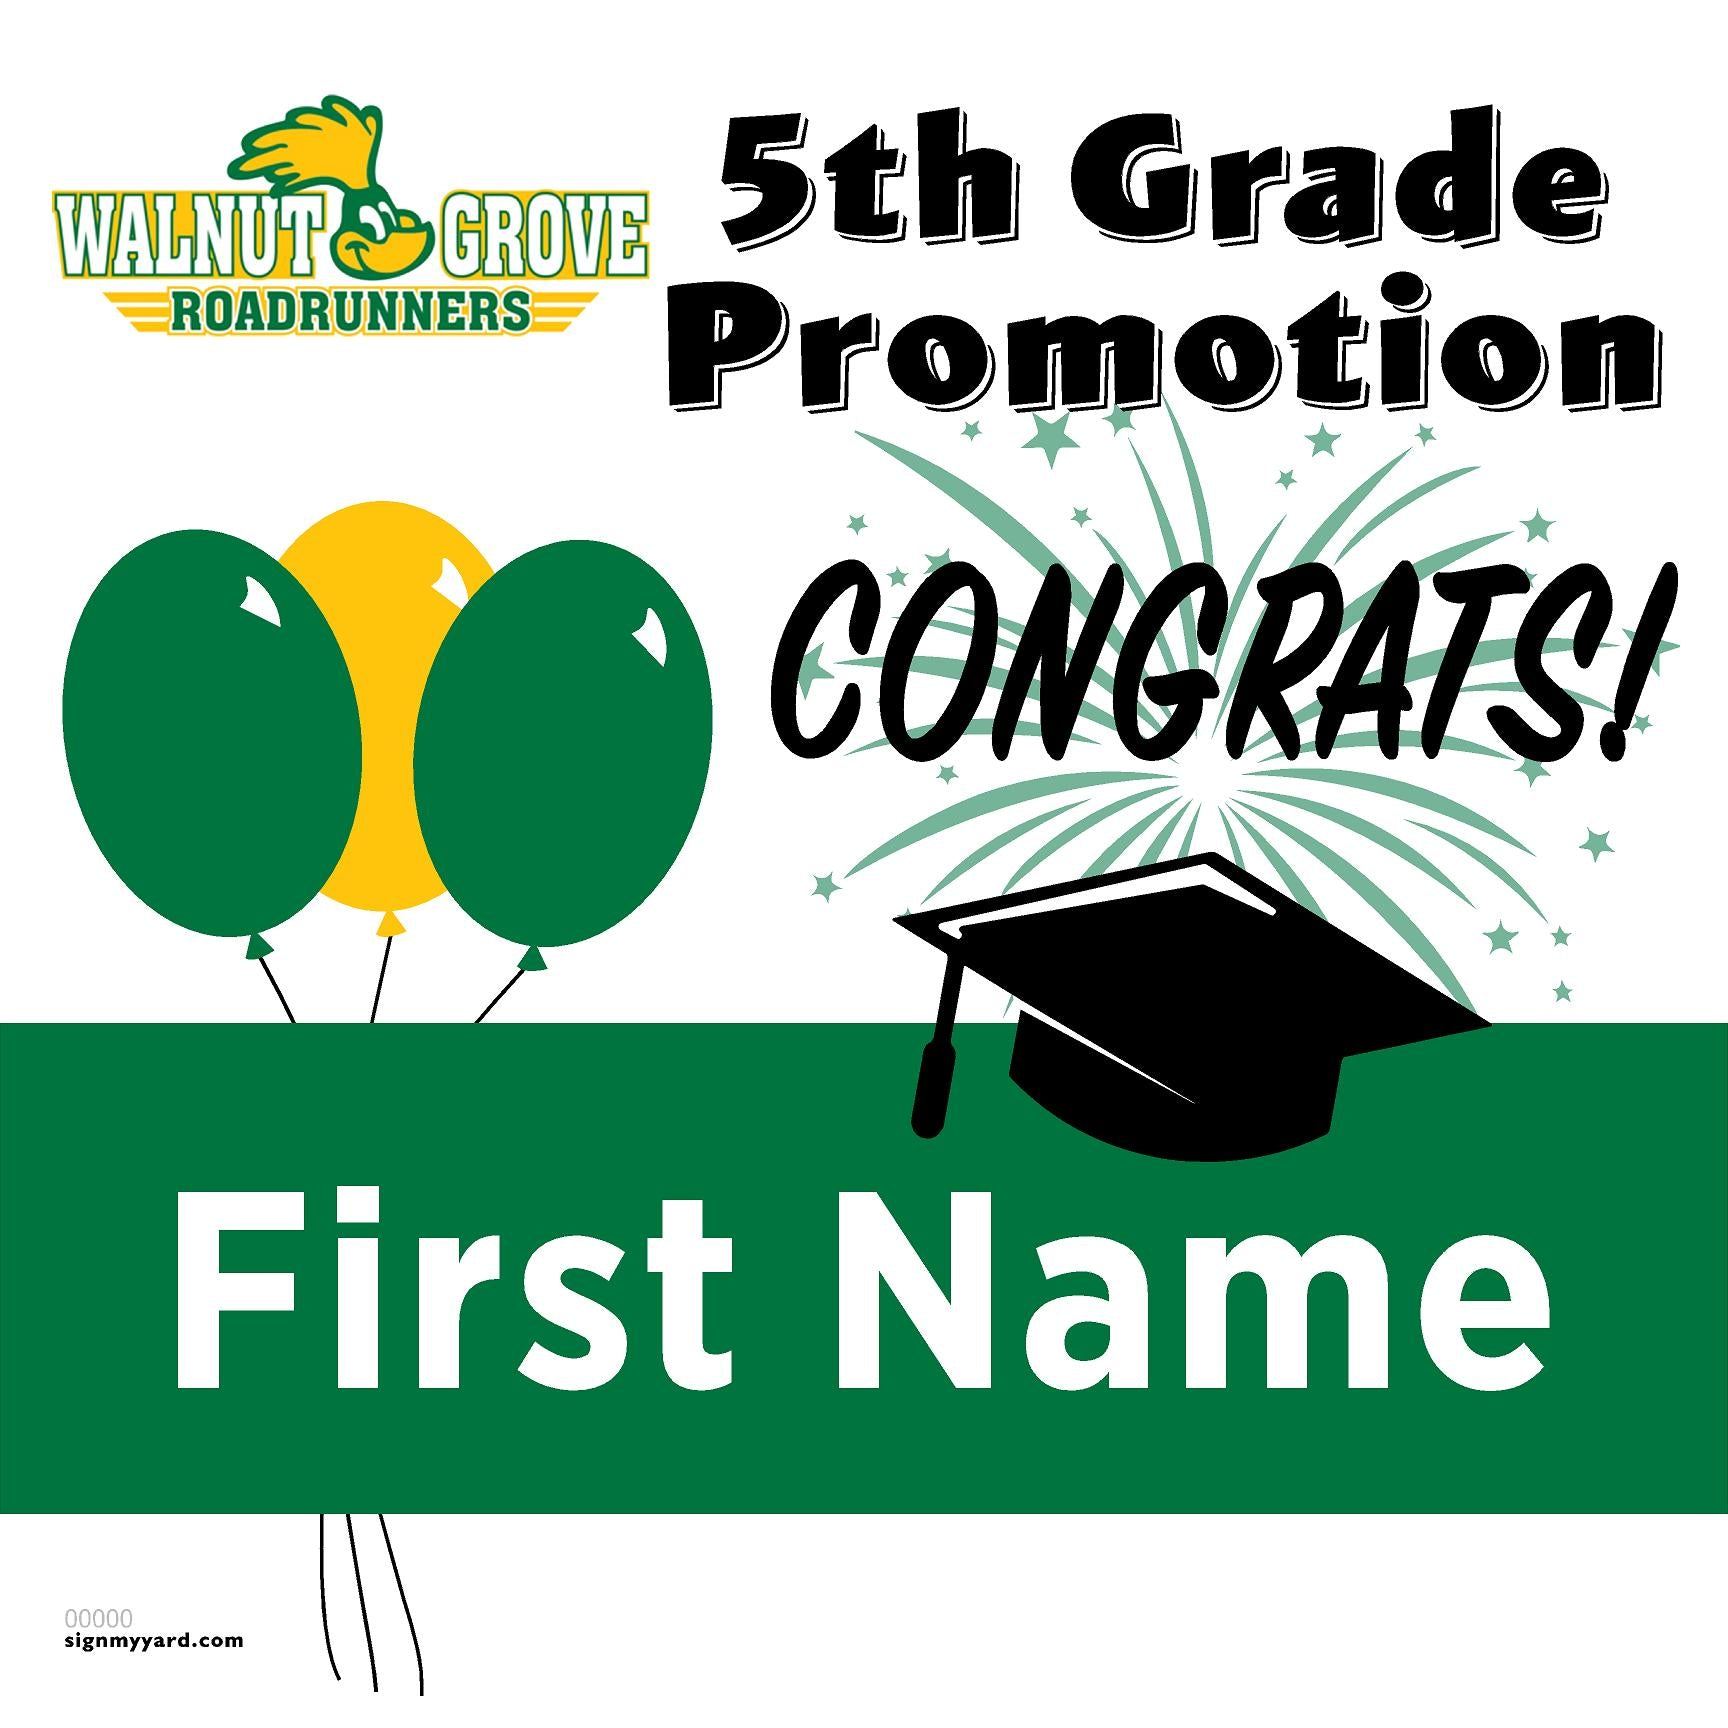 Walnut Grove Elementary School 5th Grade Promotion 24x24 #shineon2027 Yard Sign (Option A)